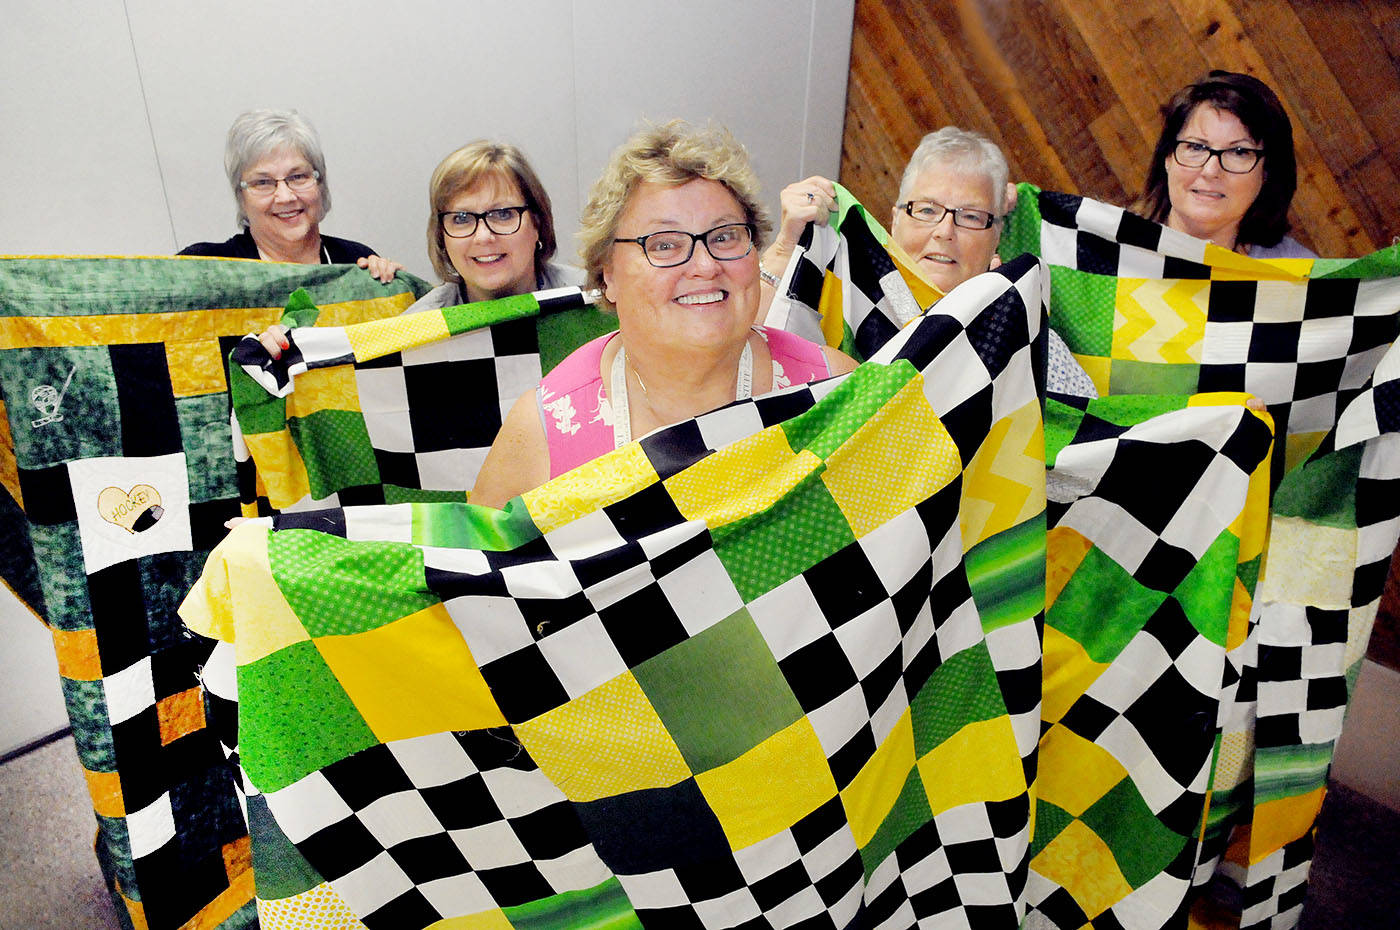 Mom of San Jose Sharks defenceman Brenden Dillon, Debbie Dillon (centre) and members of the Langley Quilters' Guild gathered April 24 to sew four 'community quilts' for the community of Humboldt.                                 Troy Landreville  Langley Times